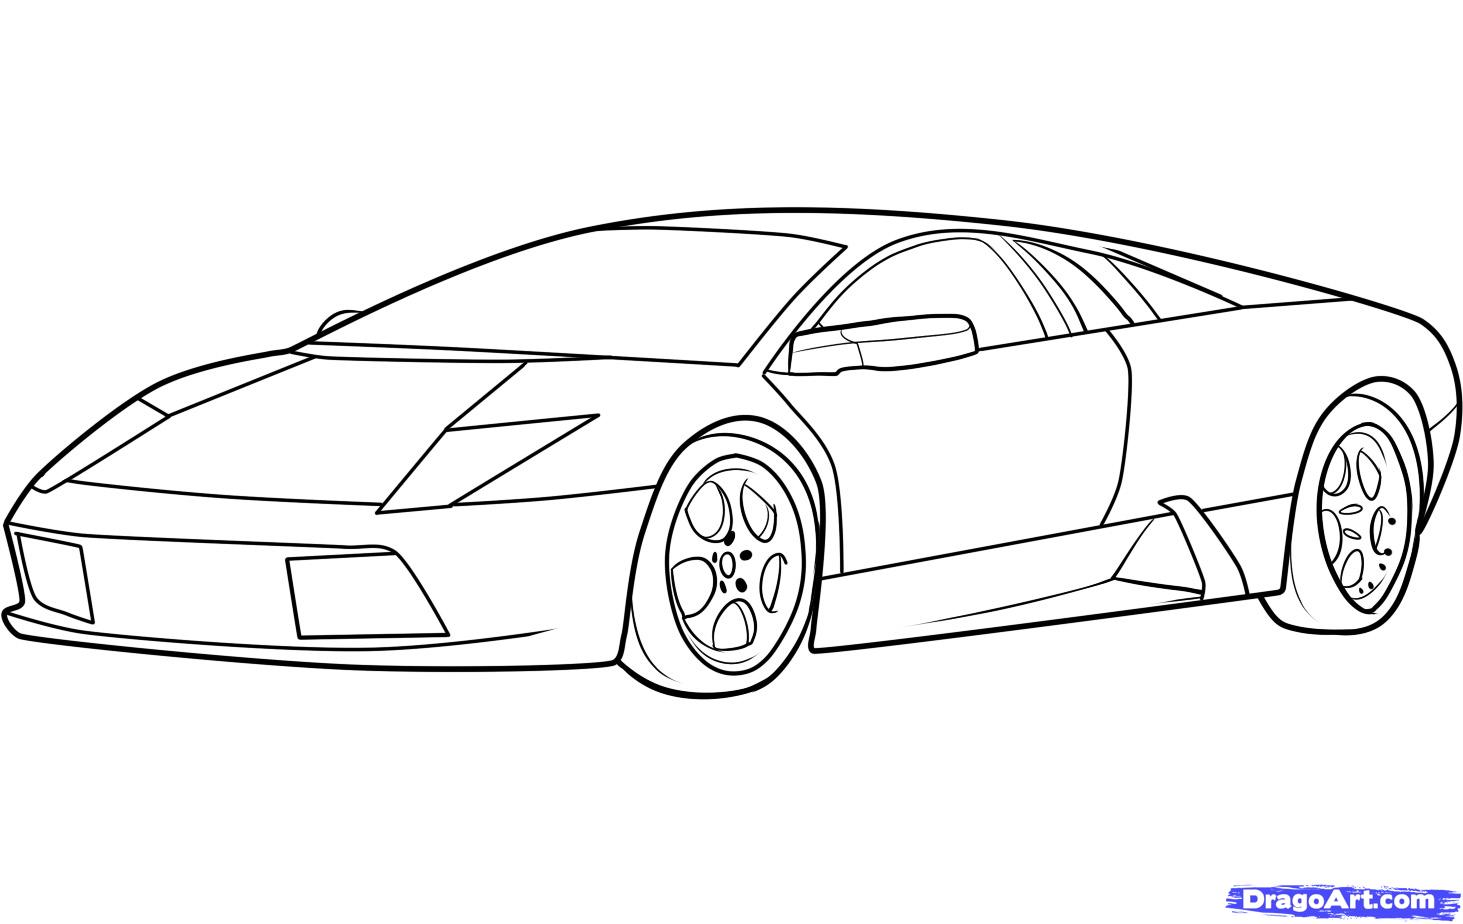 Drawn vehicle lamborghini L Draw to to Drawings